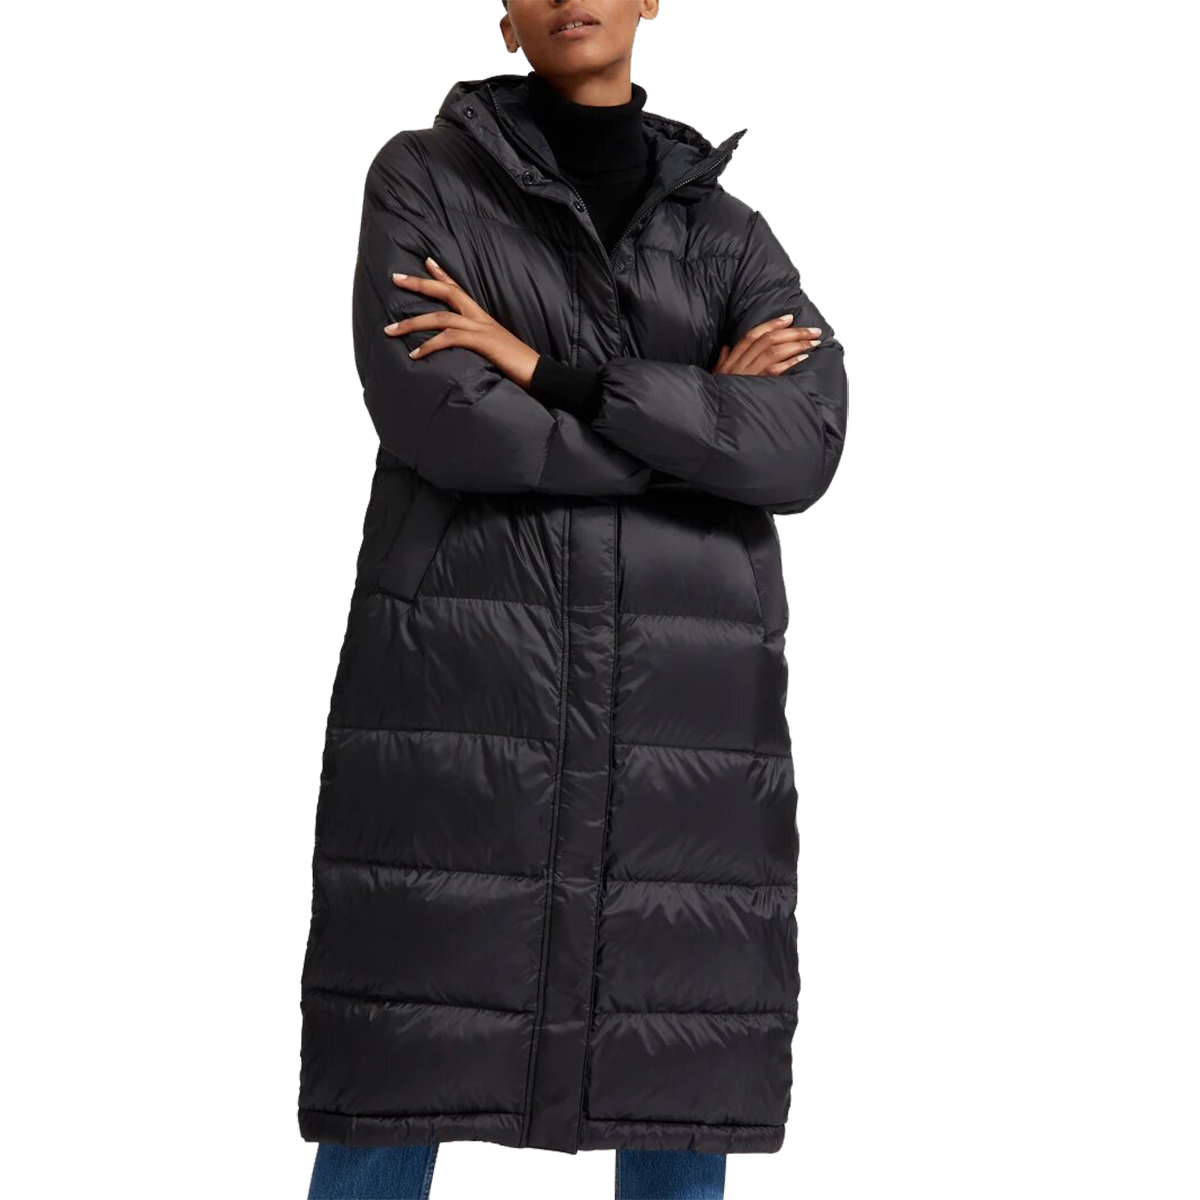 Everlane The Re:Down Sleeping Bag Puffer